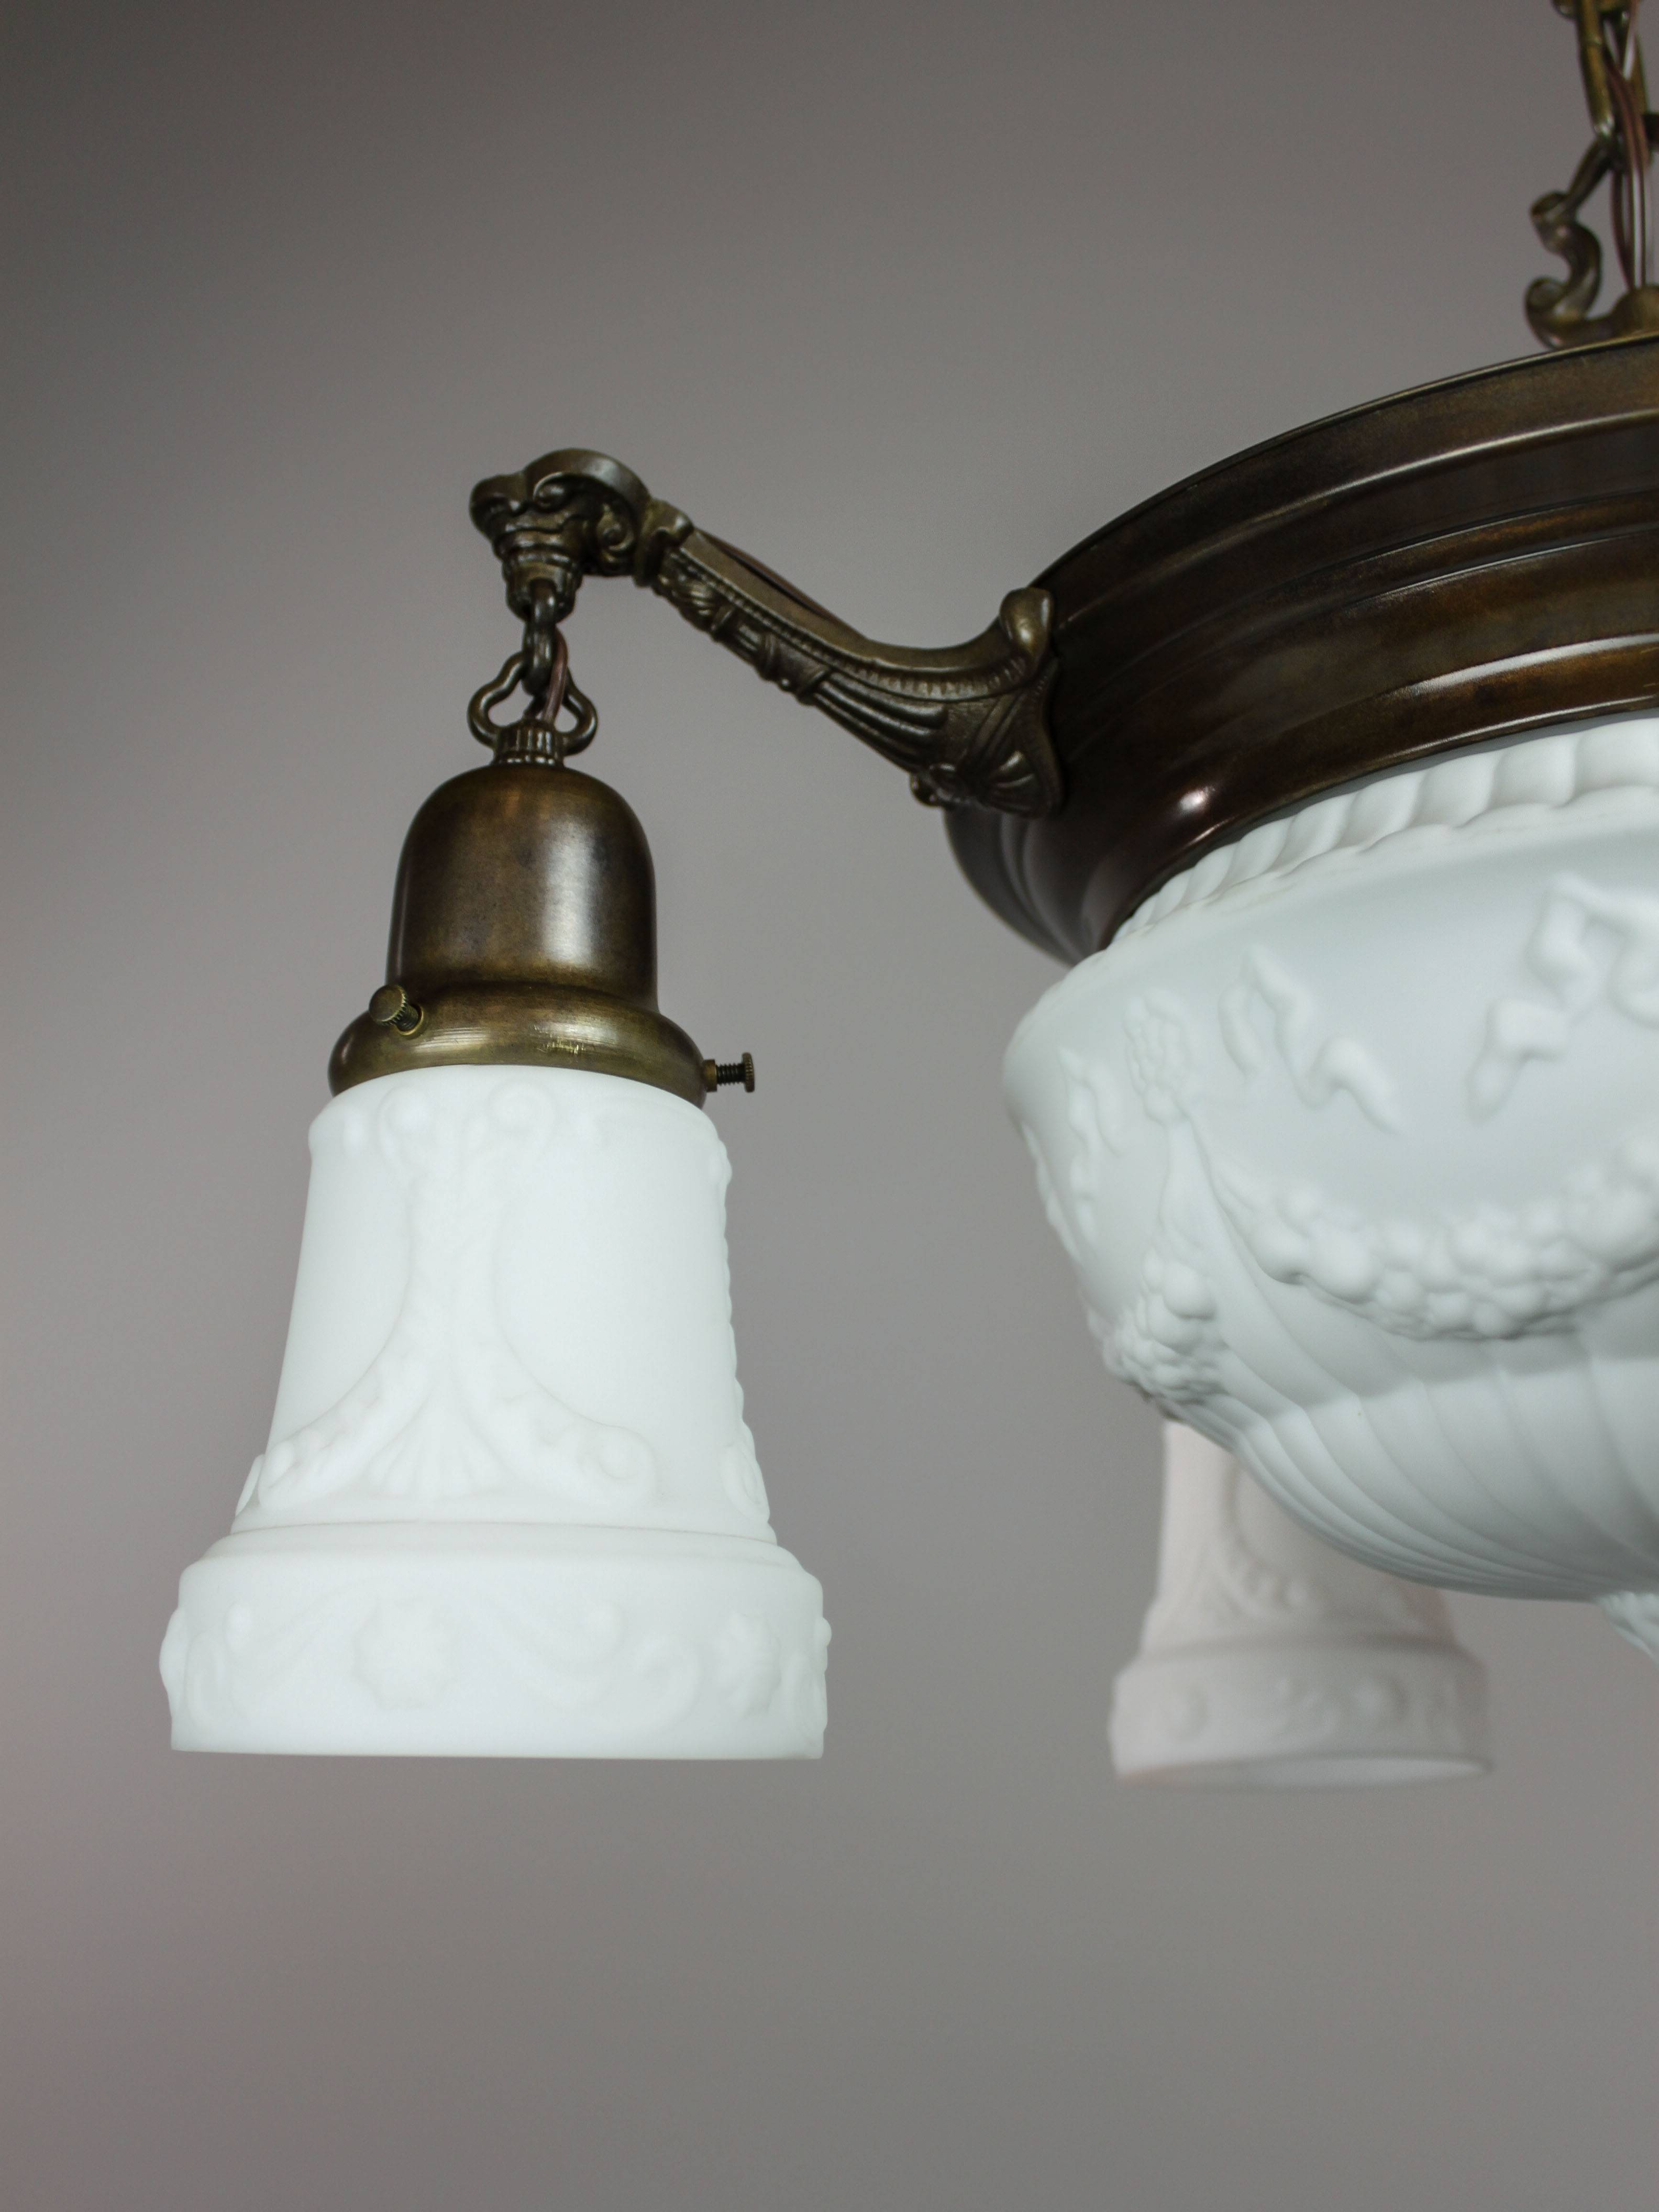 Milk Glass Light Fixtures - Light Fixtures intended for Milk Glass Lights Fixtures (Image 9 of 15)